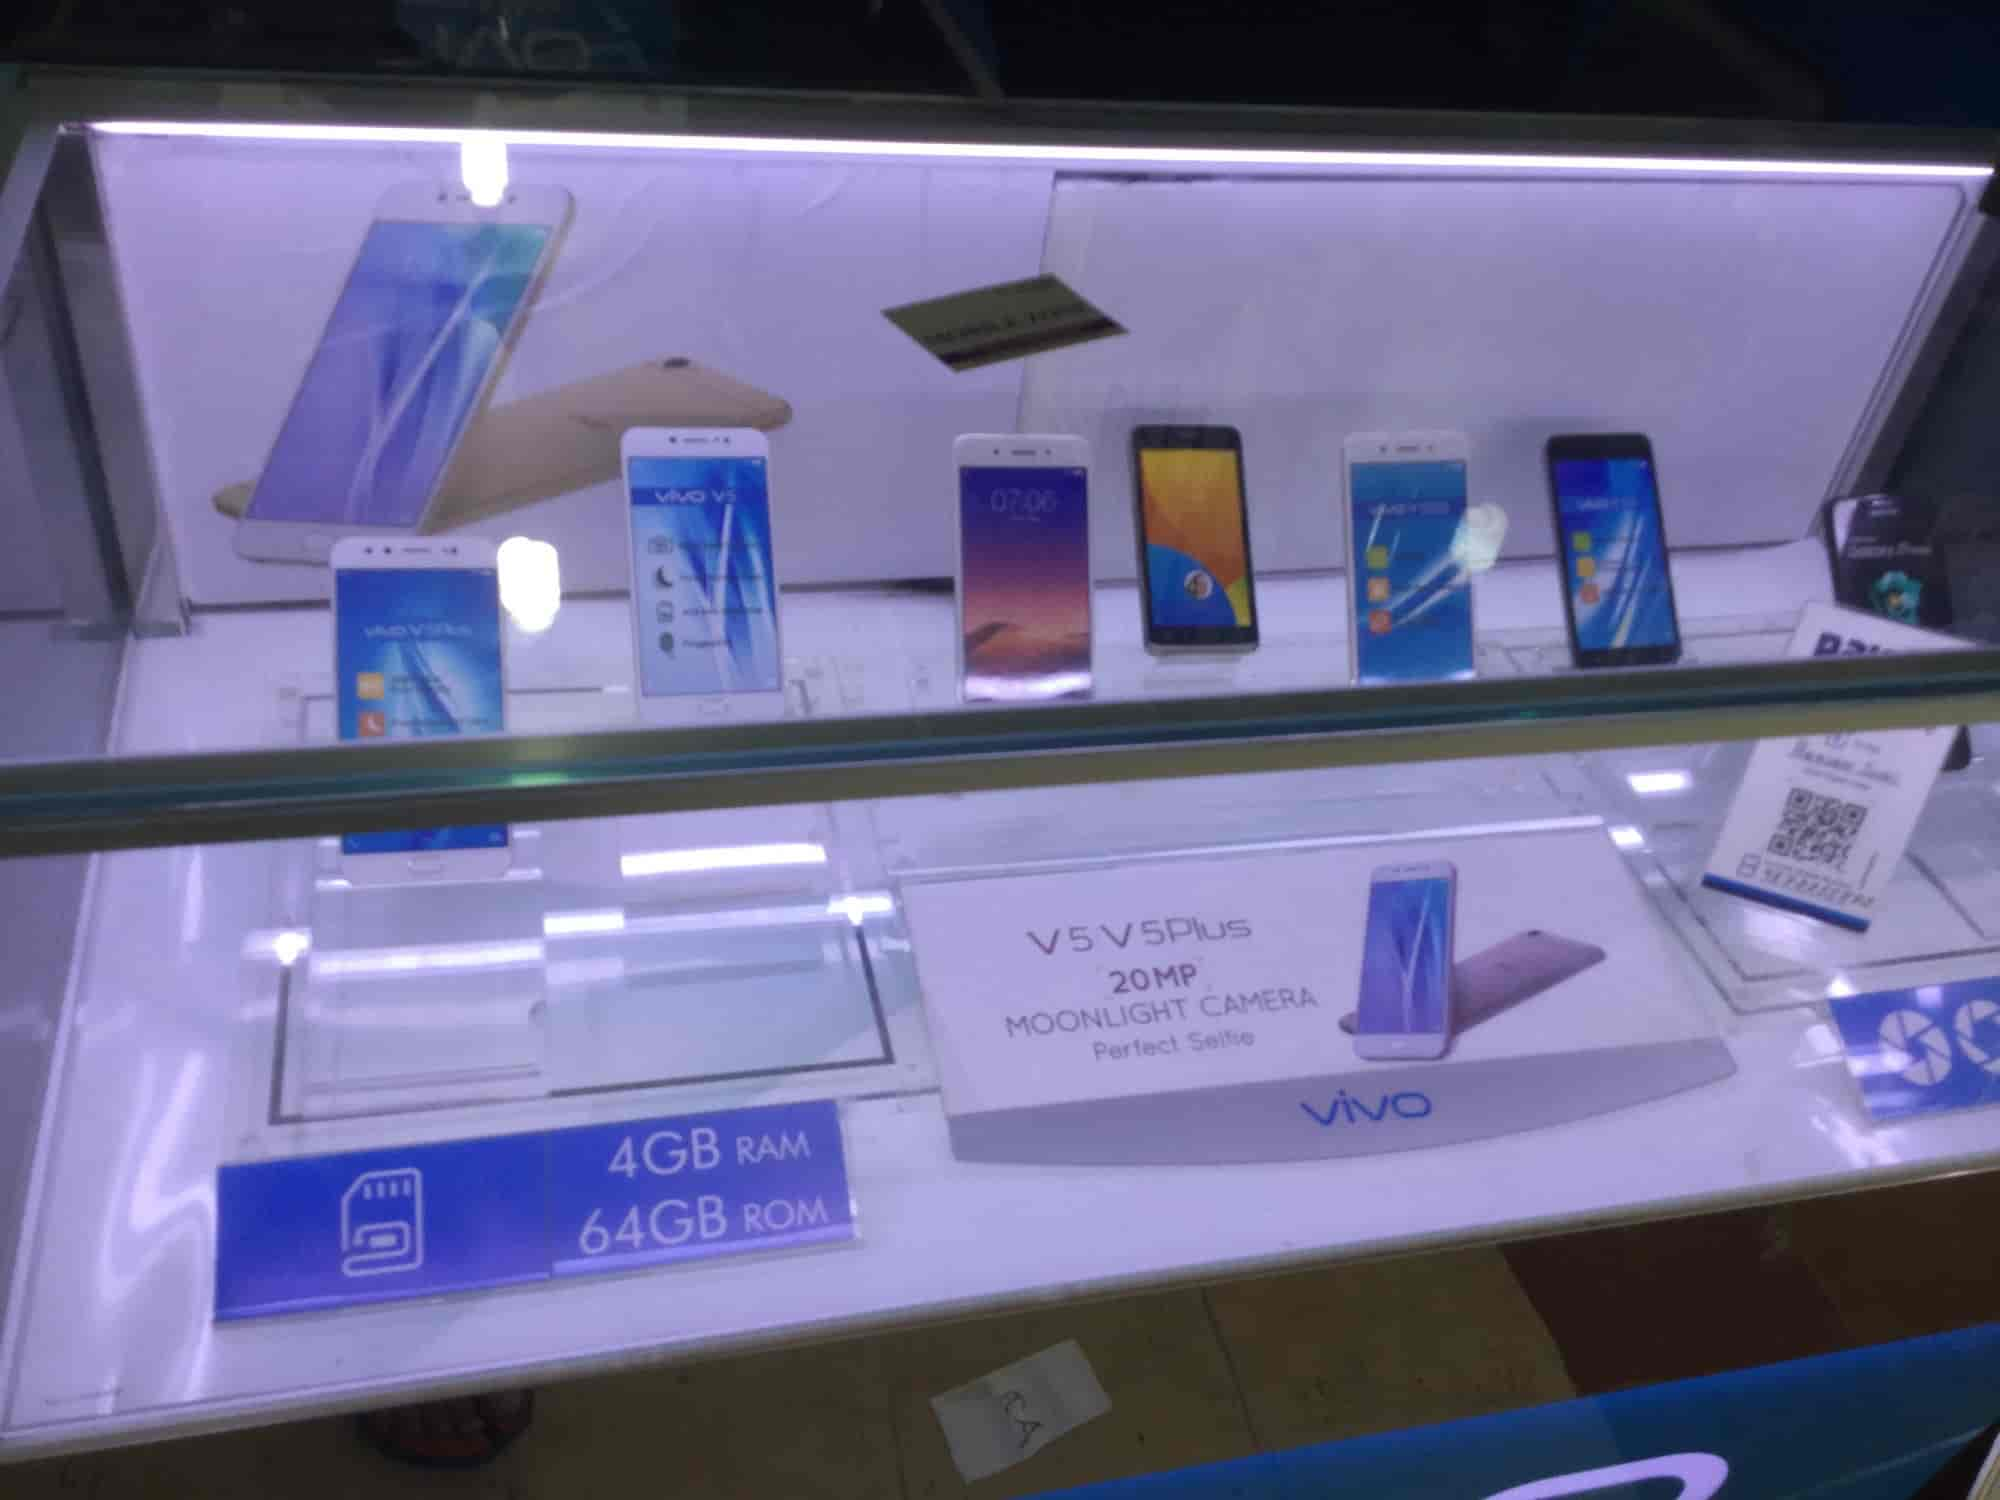 mobile zone chandigarh sector 46c chandigarh mobile phone dealers 1nk5h5p